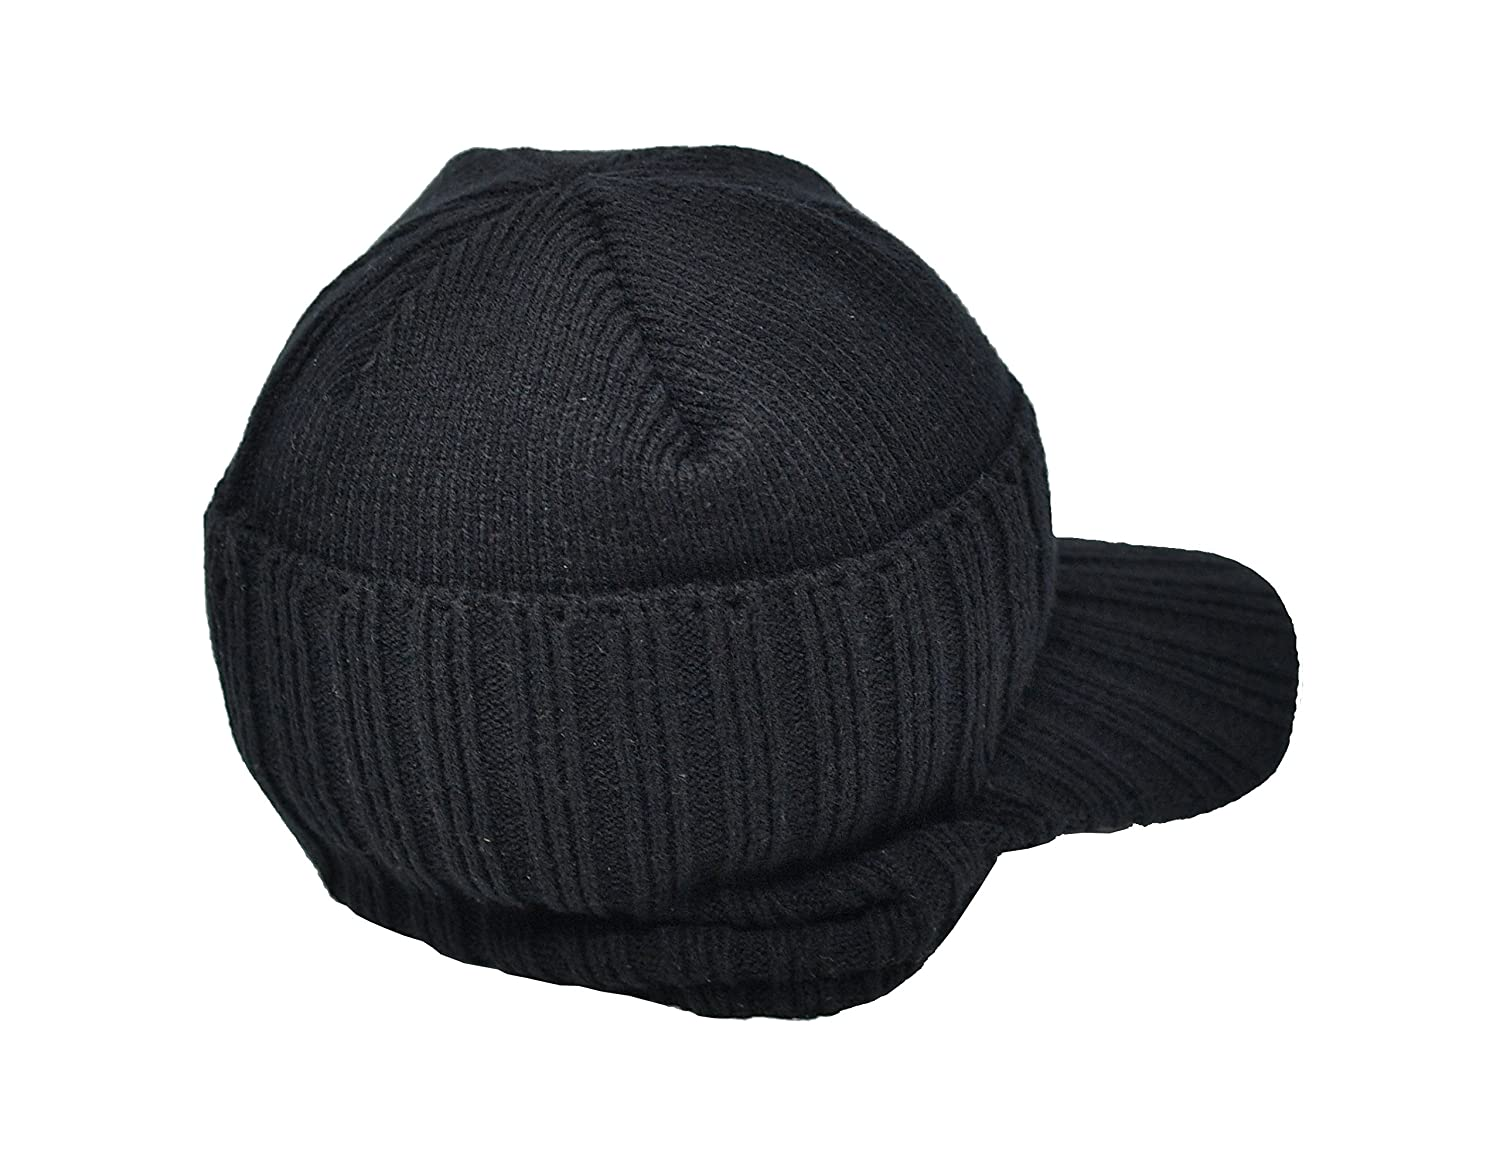 7186b7519c008 Warm Winter Hat, Beanie Style with Peak. Unisex for Men or Women Heat Max  3.5 TOG Thermal Insulated Hat (Black) - by Home-X at Amazon Women's  Clothing store ...